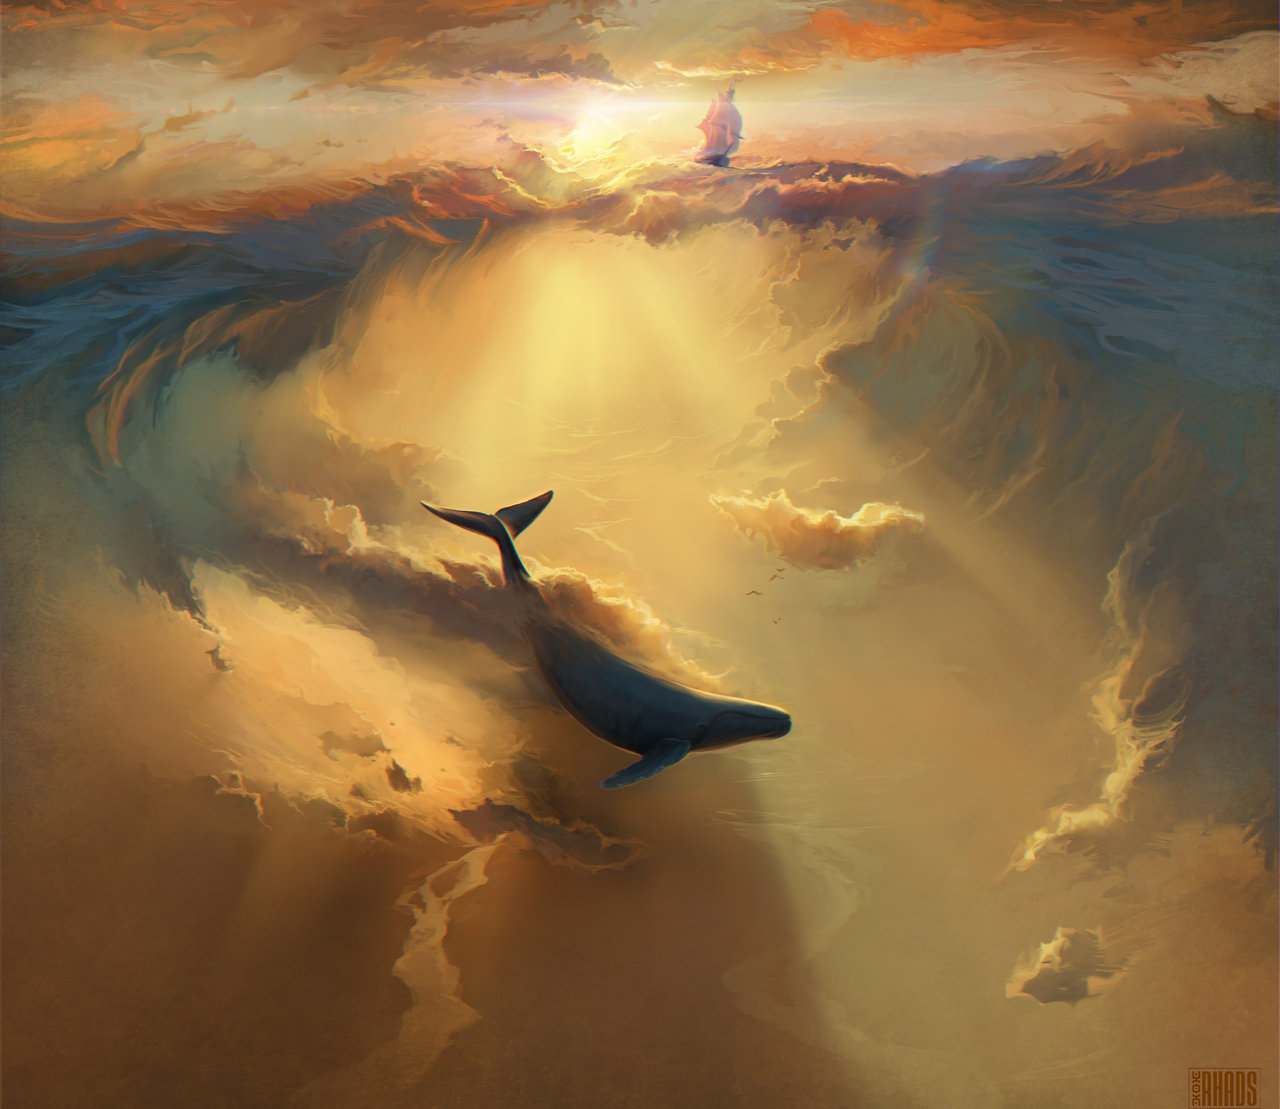 http://1.bp.blogspot.com/-8Zj_VXwgDoE/UgKBSwa9uiI/AAAAAAAAAE4/ocTdU6VtZUc/s1600/Photos-room_com___infinite_dreams_by_rhads.jpg